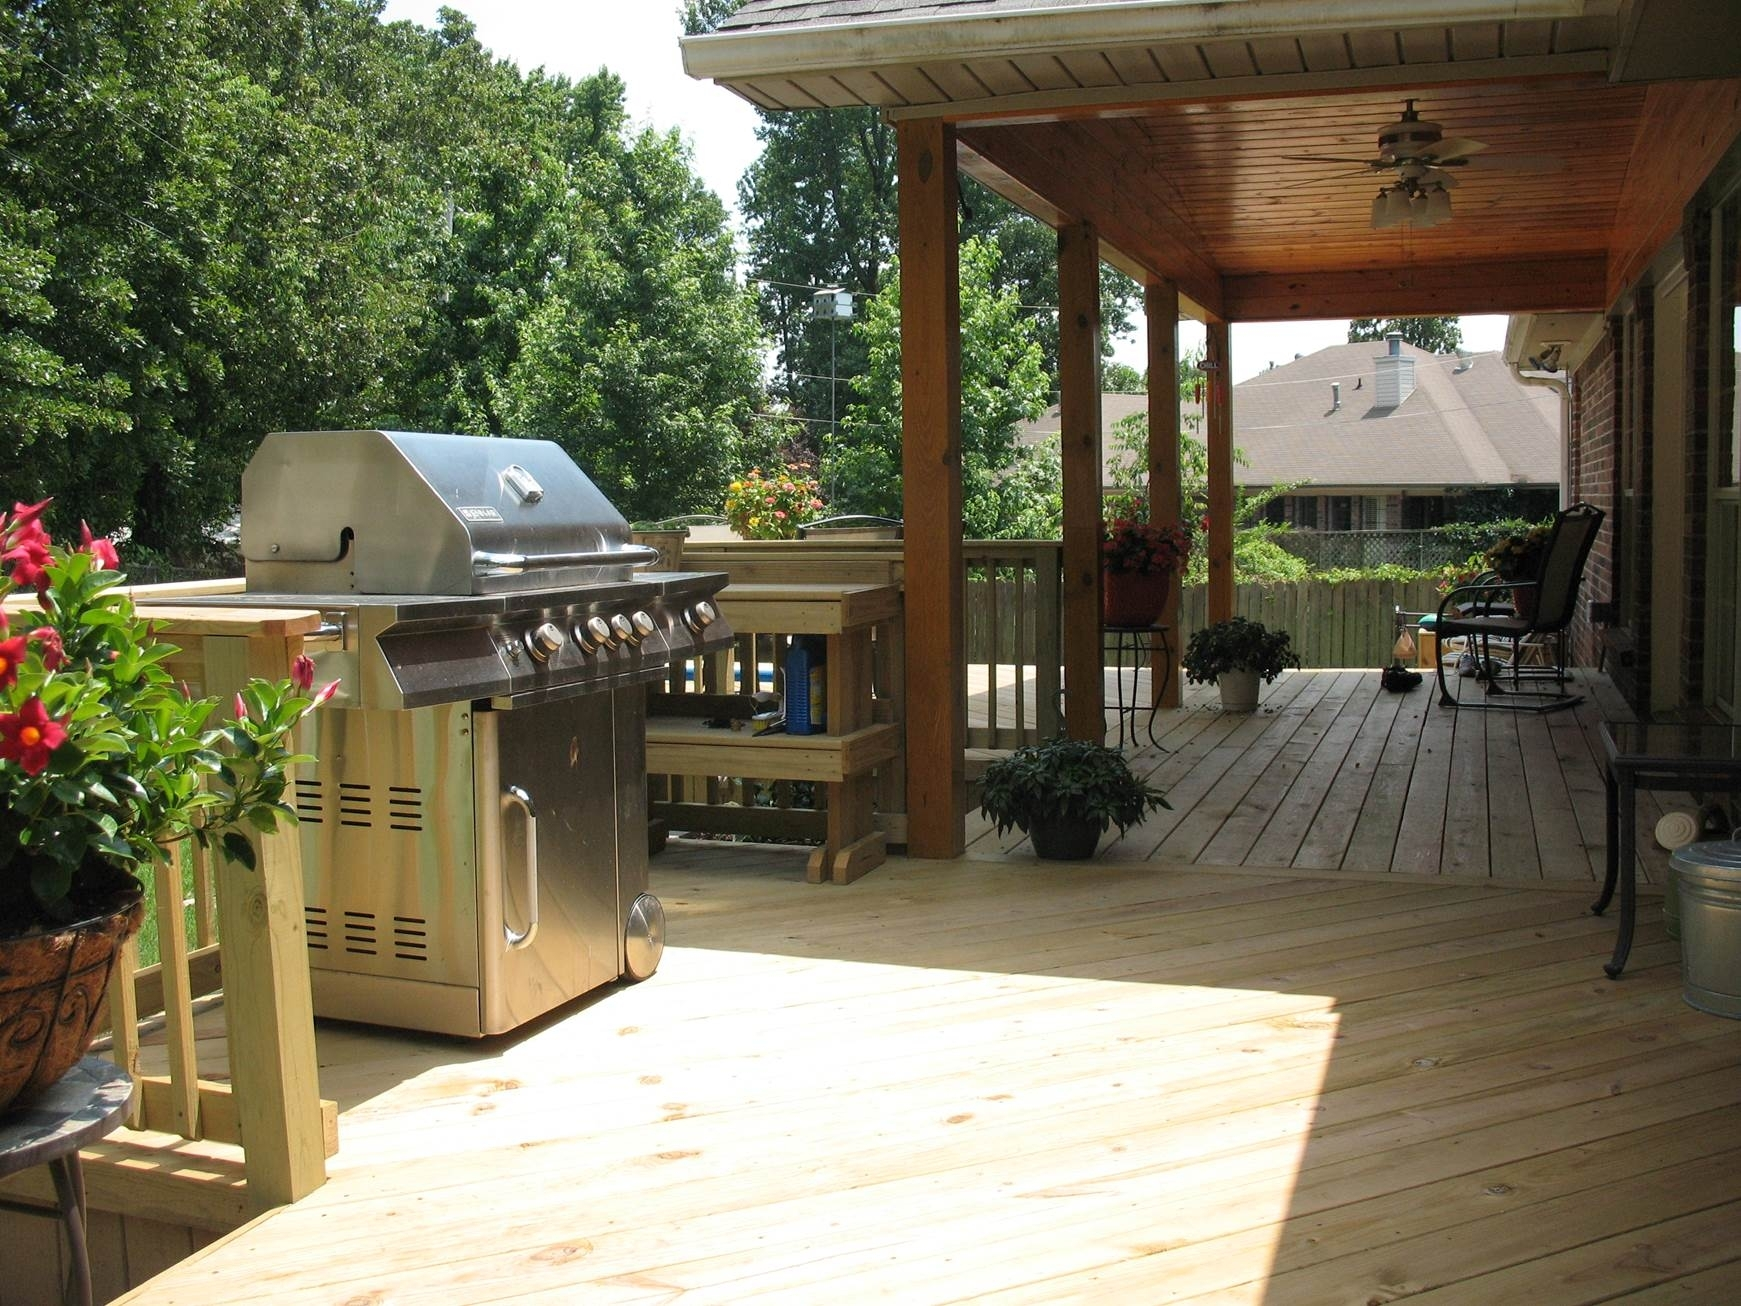 Image of: St Louis Mo Grill Decks Vs Outdoor Kitchens Archadeck St Within Outdoor Deck Kitchens Outdoor Deck Kitchens Perfect For All Family